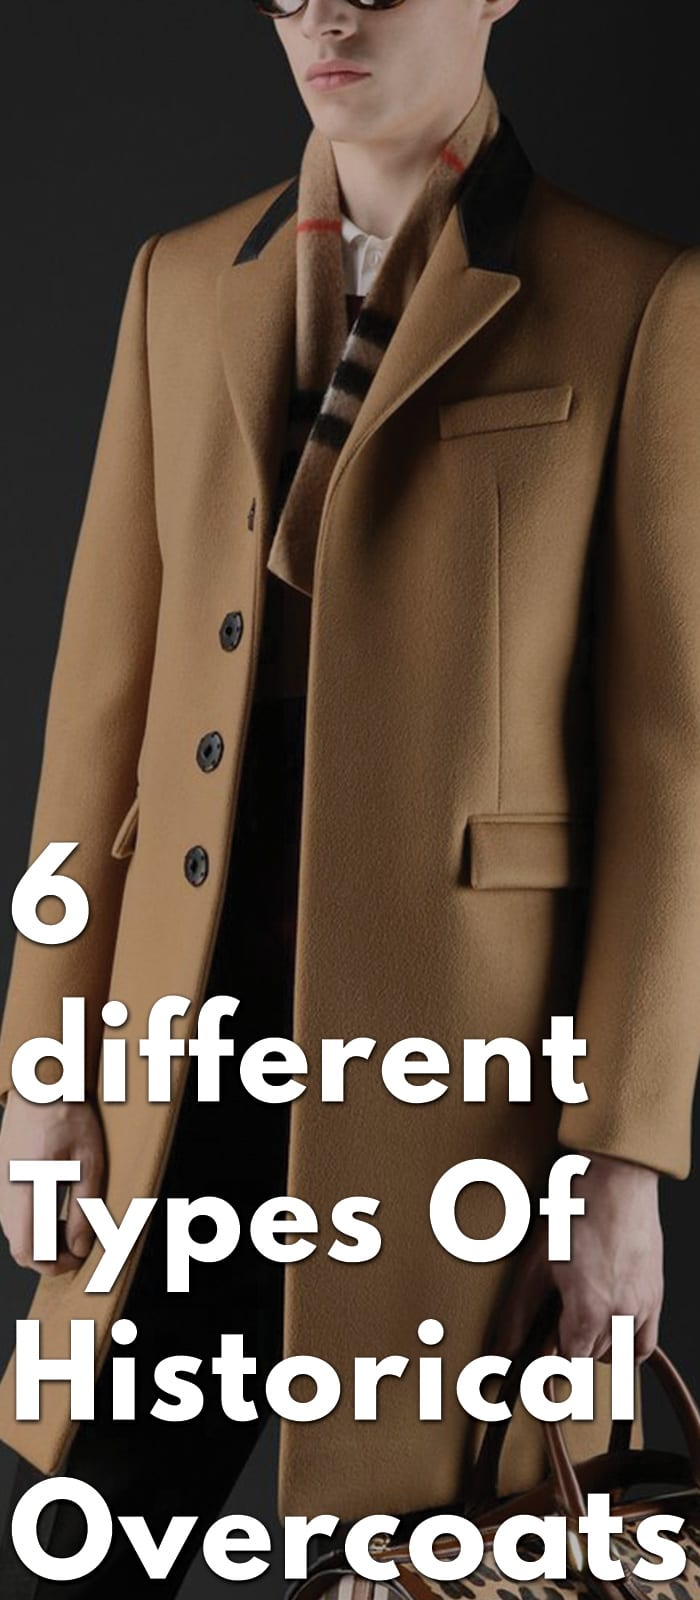 6-different-Types-Of-Historical-Overcoats